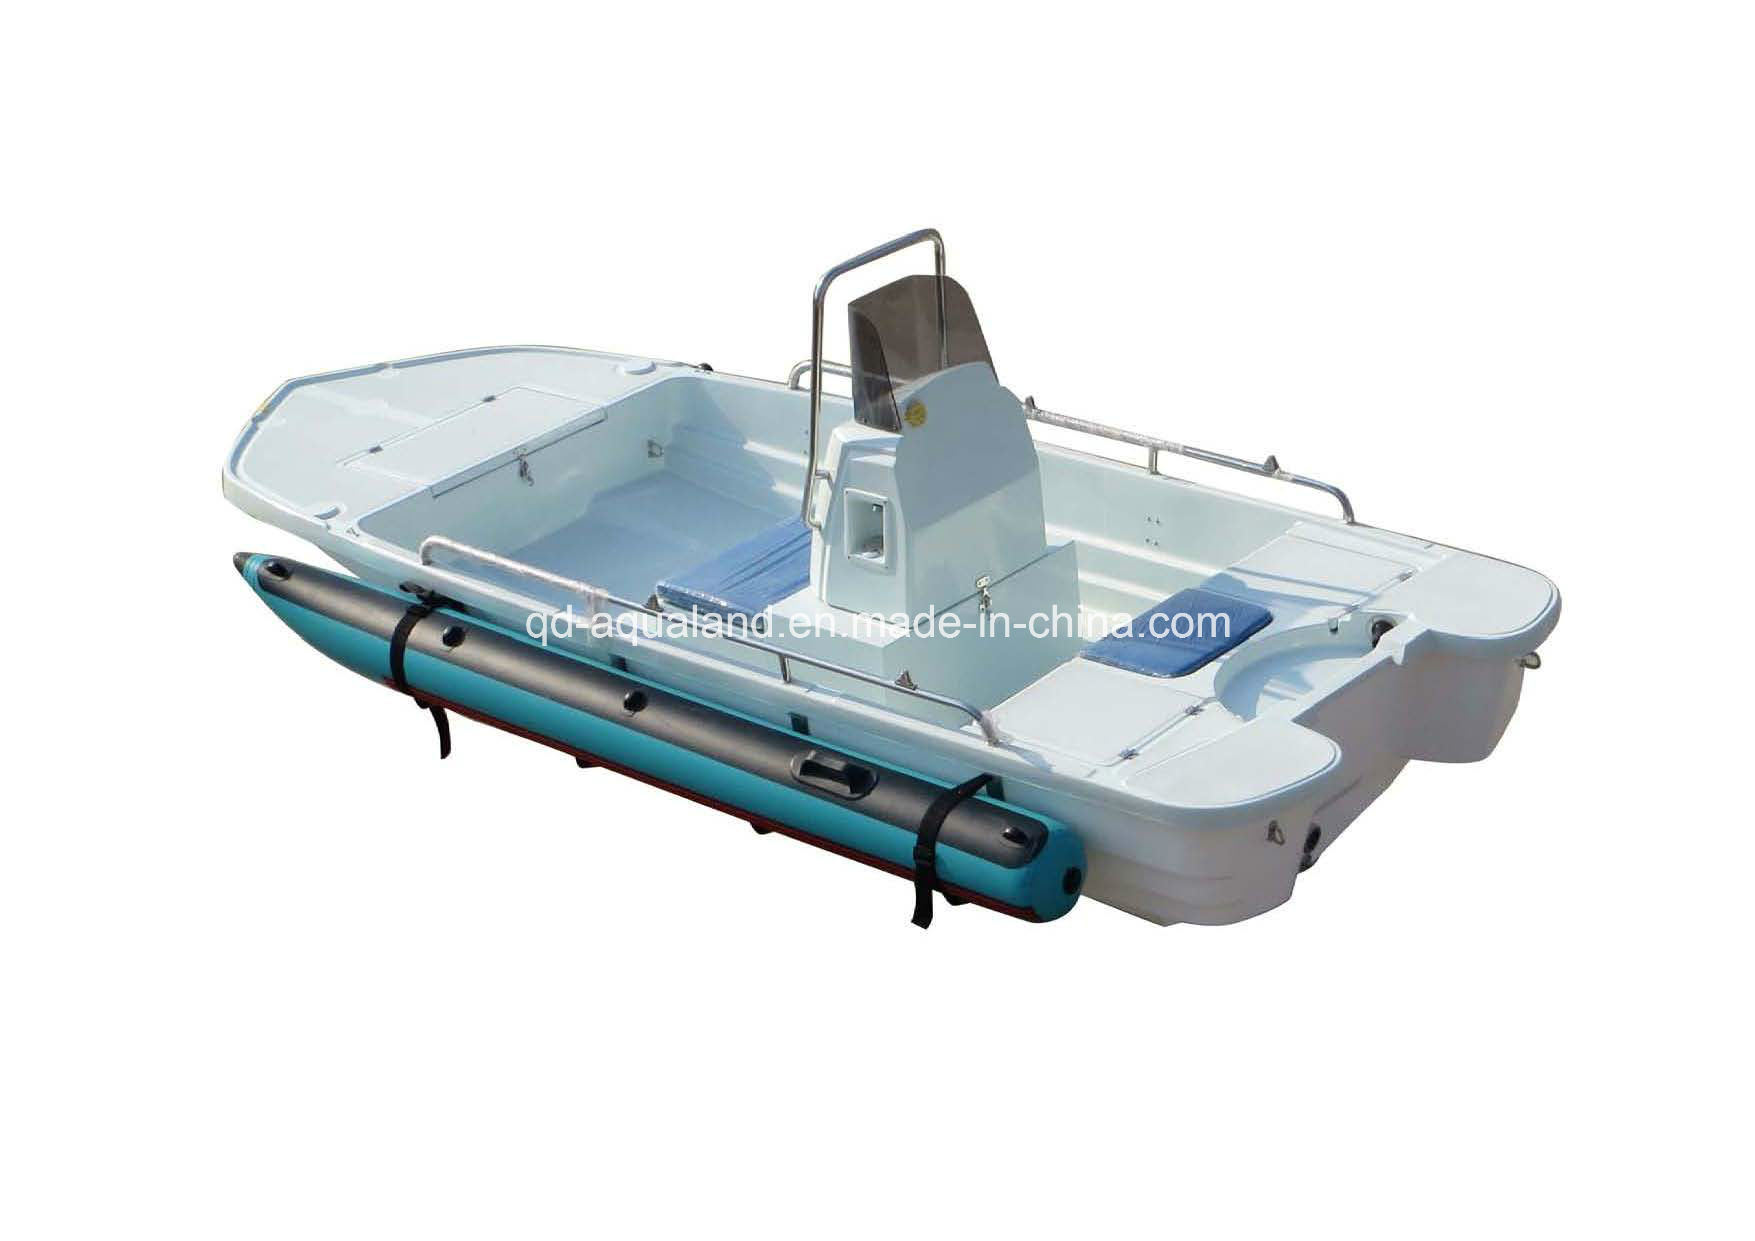 Aqualand 13feet Fiberglass Fishing Boat /Sports Rib Motor Boat (130)